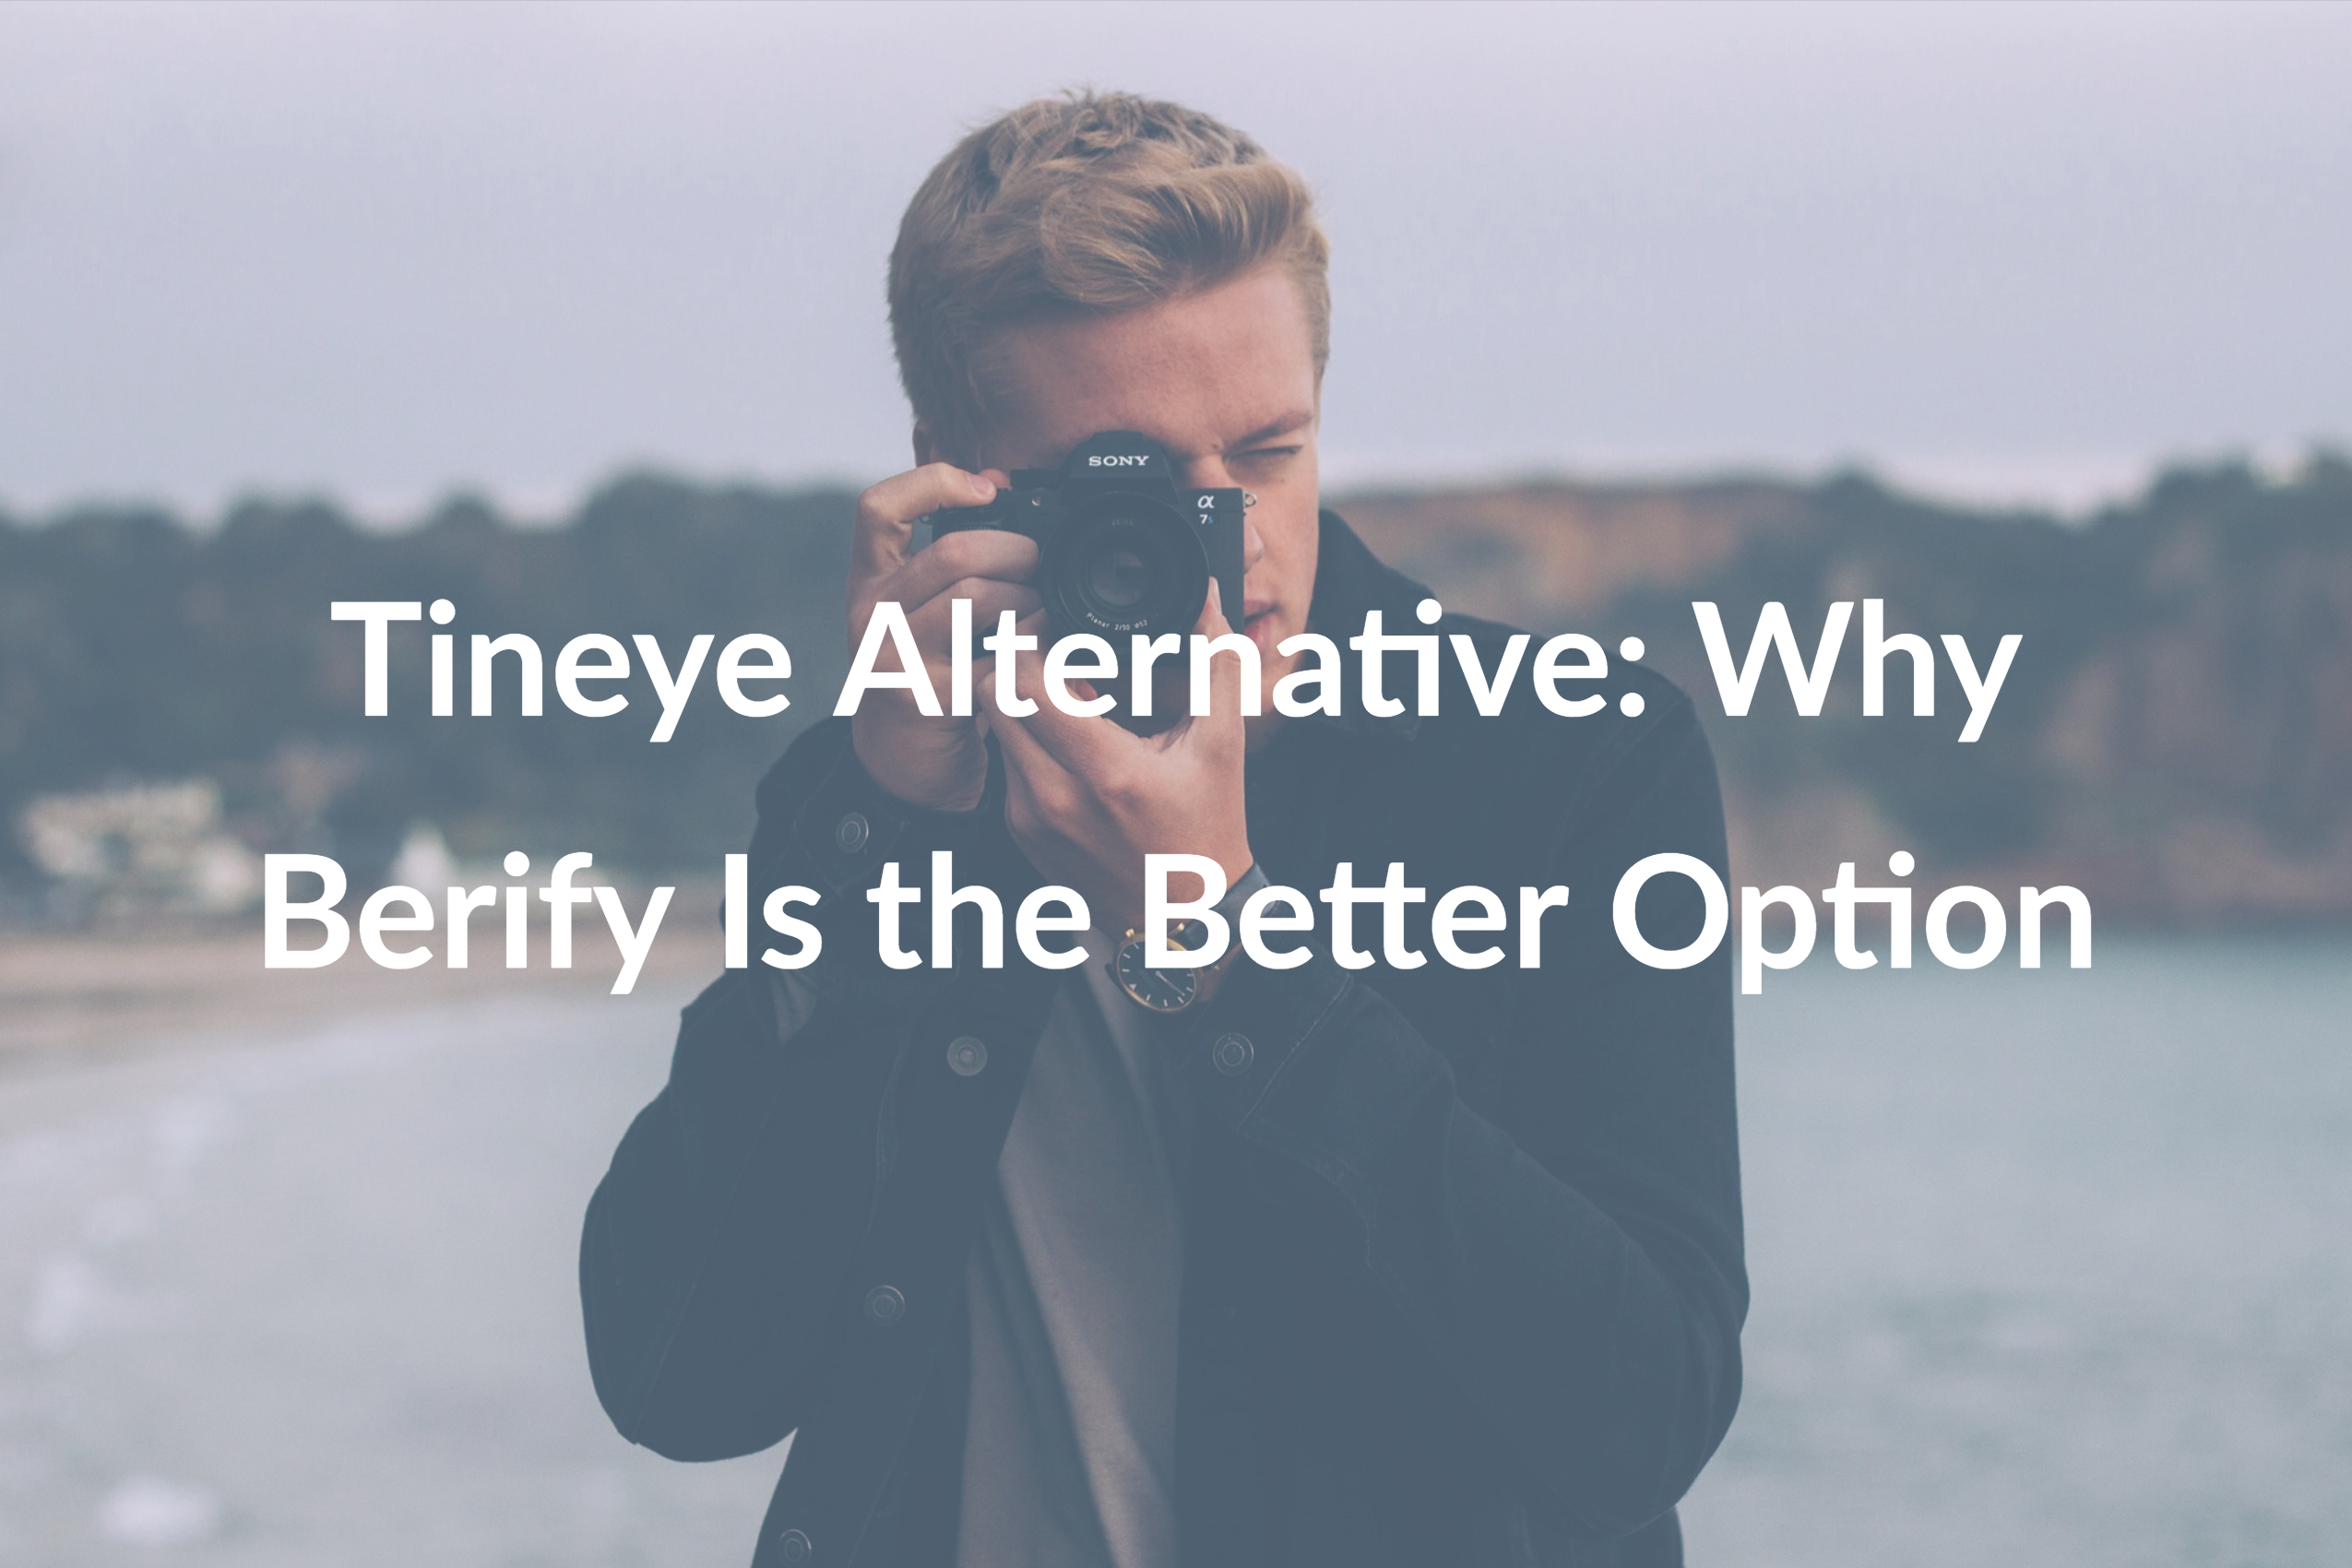 Tineye Alternative: Why Berify Is the Better Option